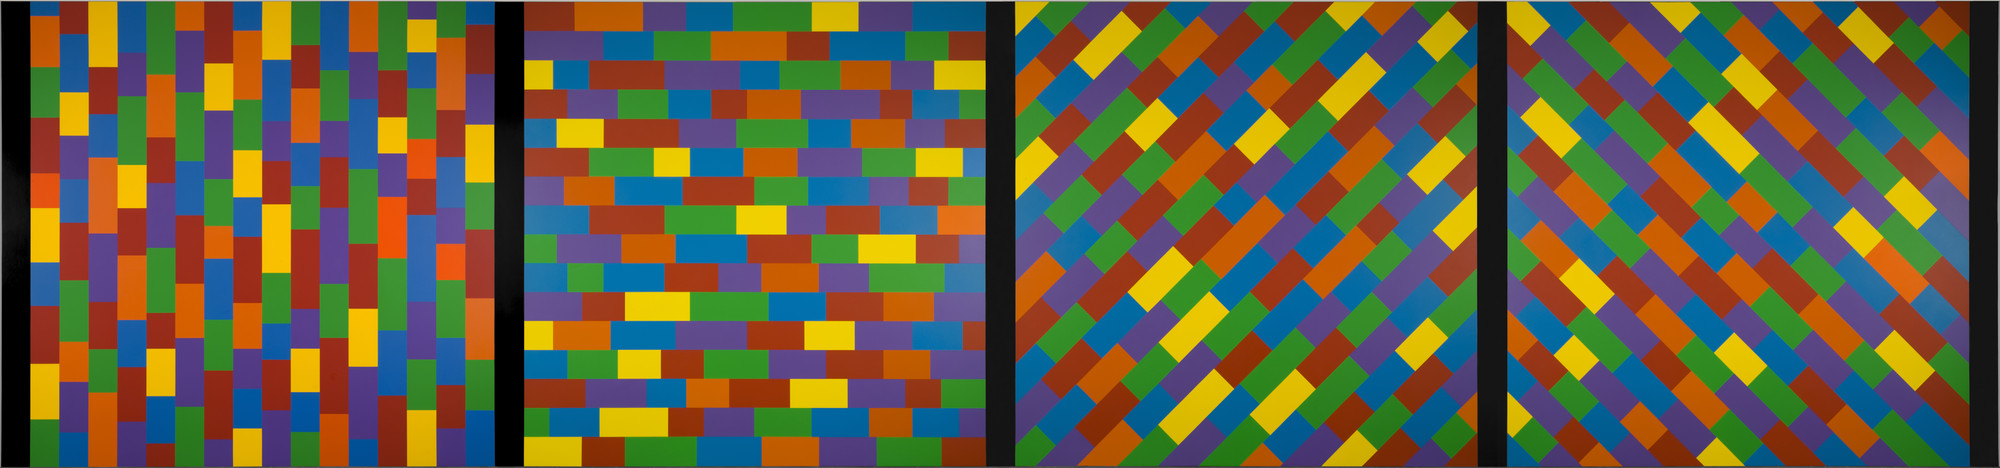 Sol LeWitt. Wall Drawing #1144, Broken Bands of Color in Four Directions. 2004